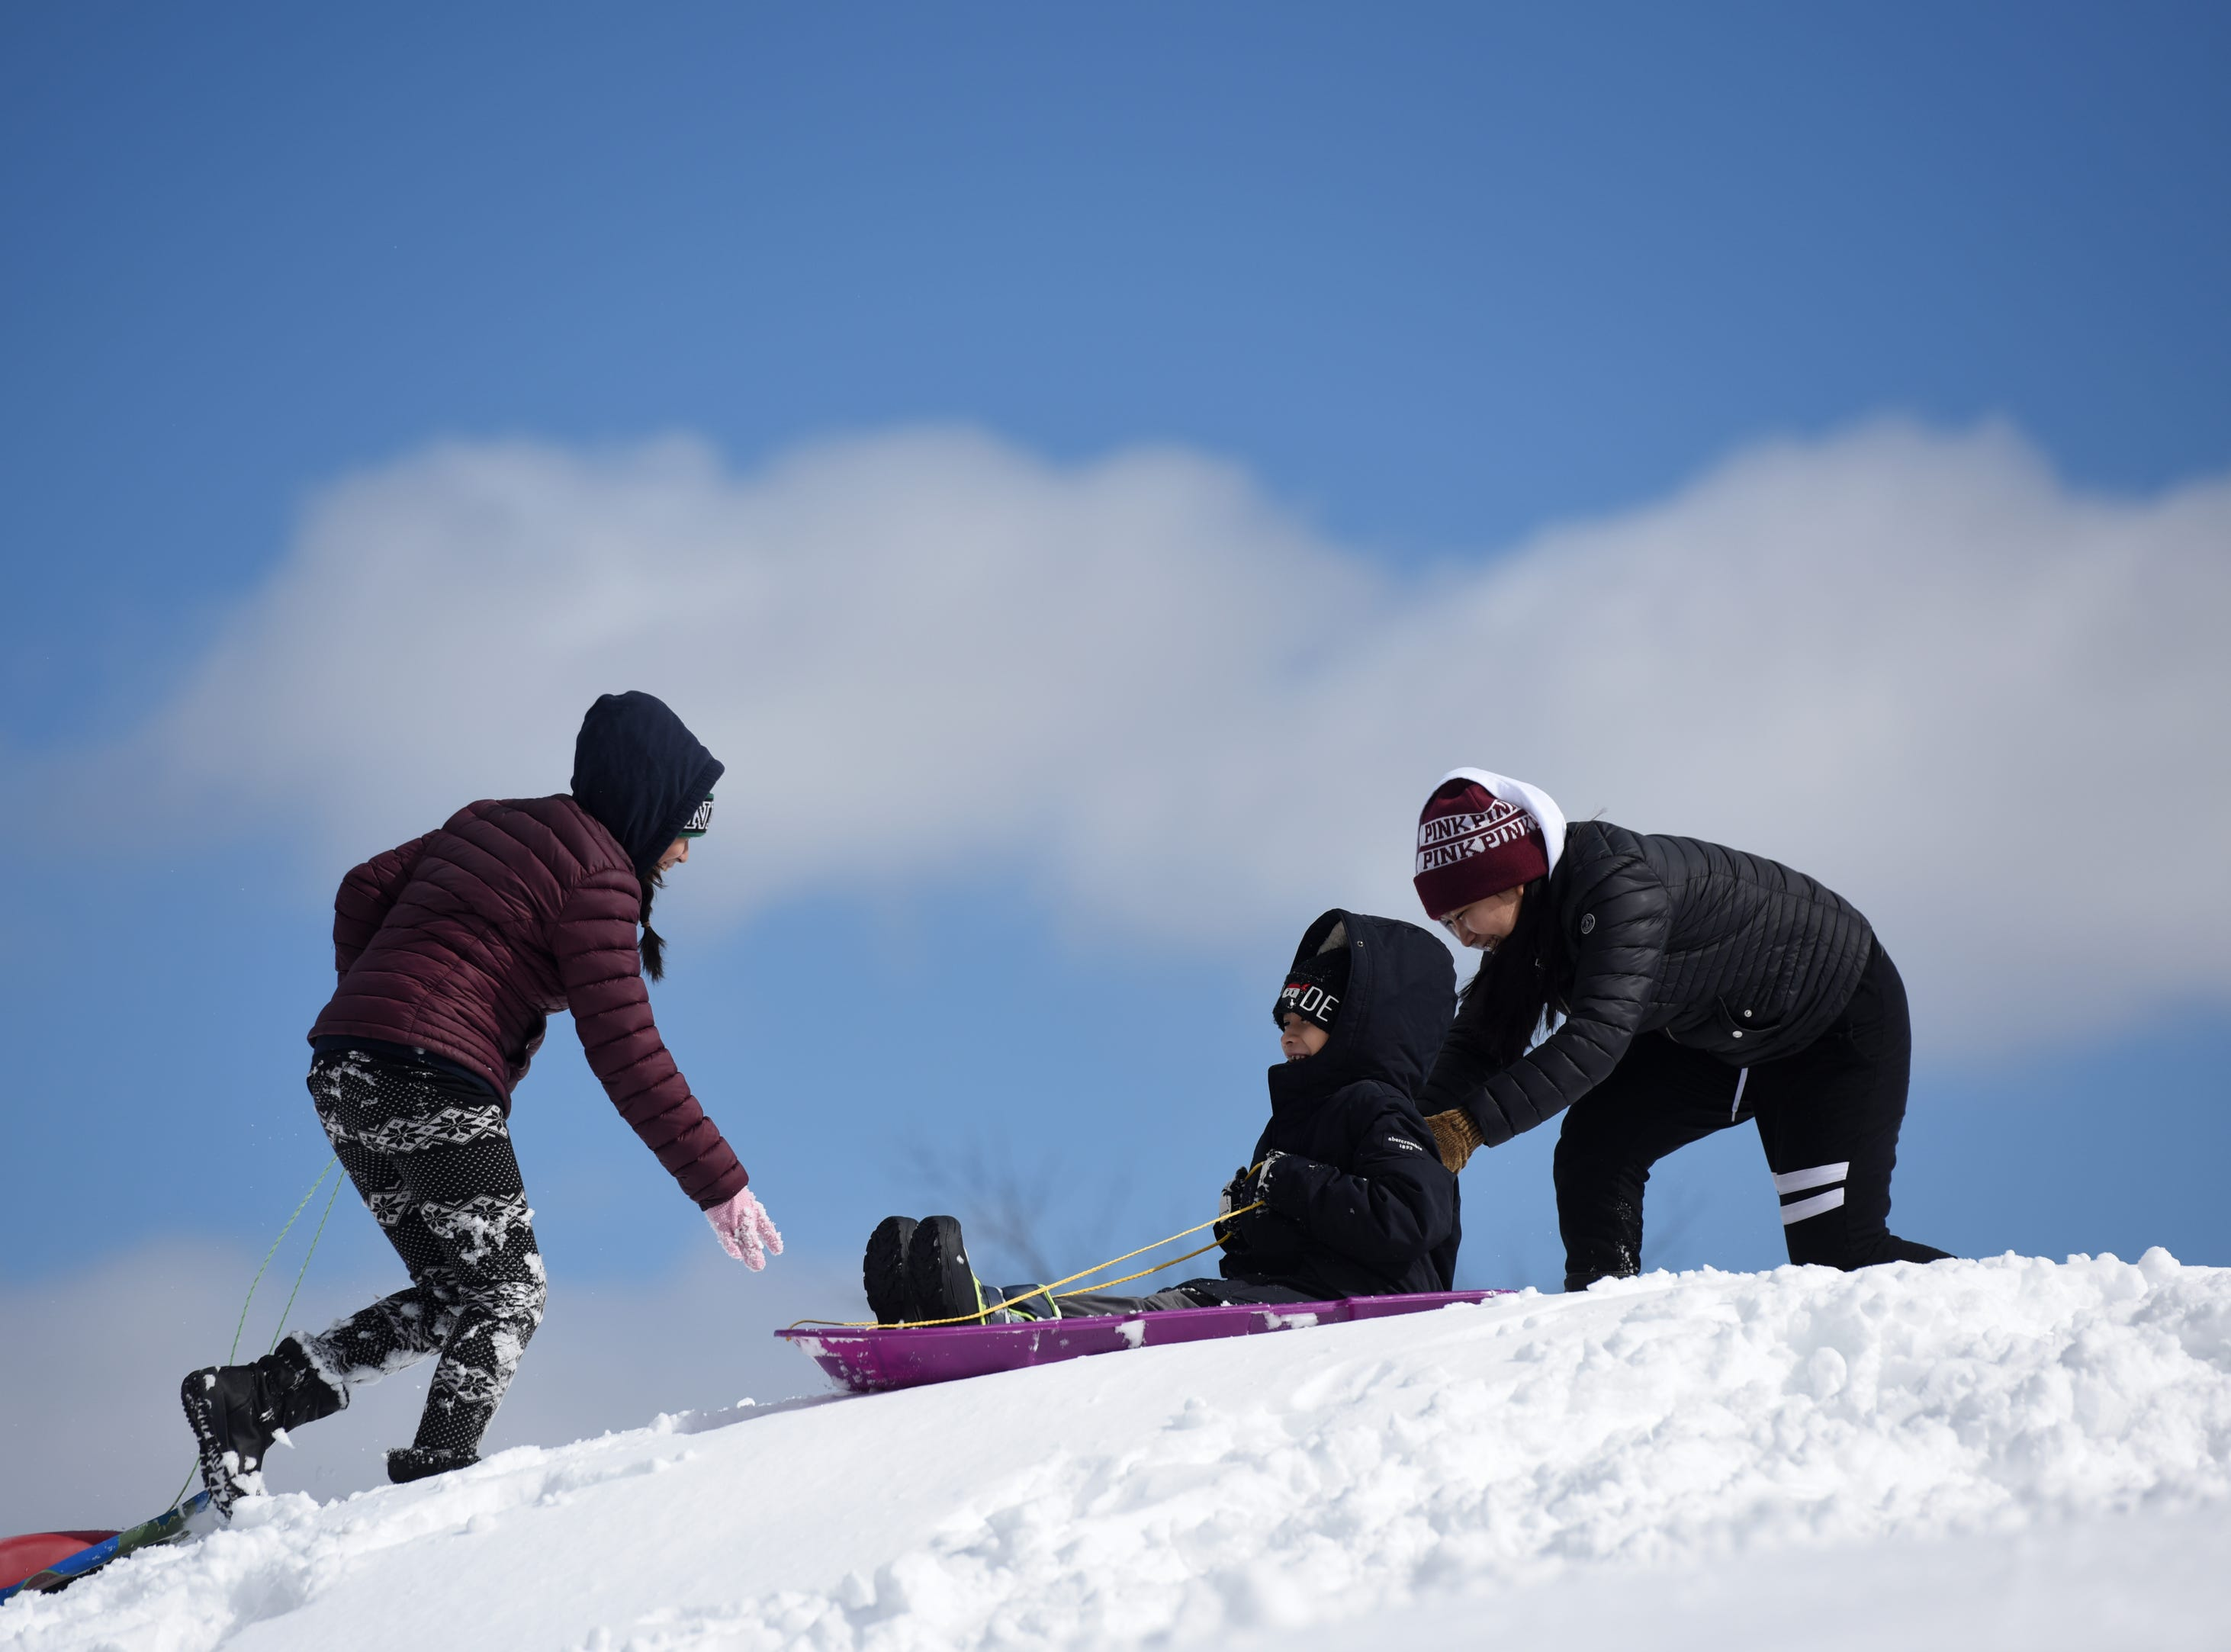 Sisters Brianna Cruz, 11 and Giselle Cruz 14, from left, give their brother Brandon Cruz, 9, a push while sledding at Garret Mountain Reservation on Monday, March 4, 2019.